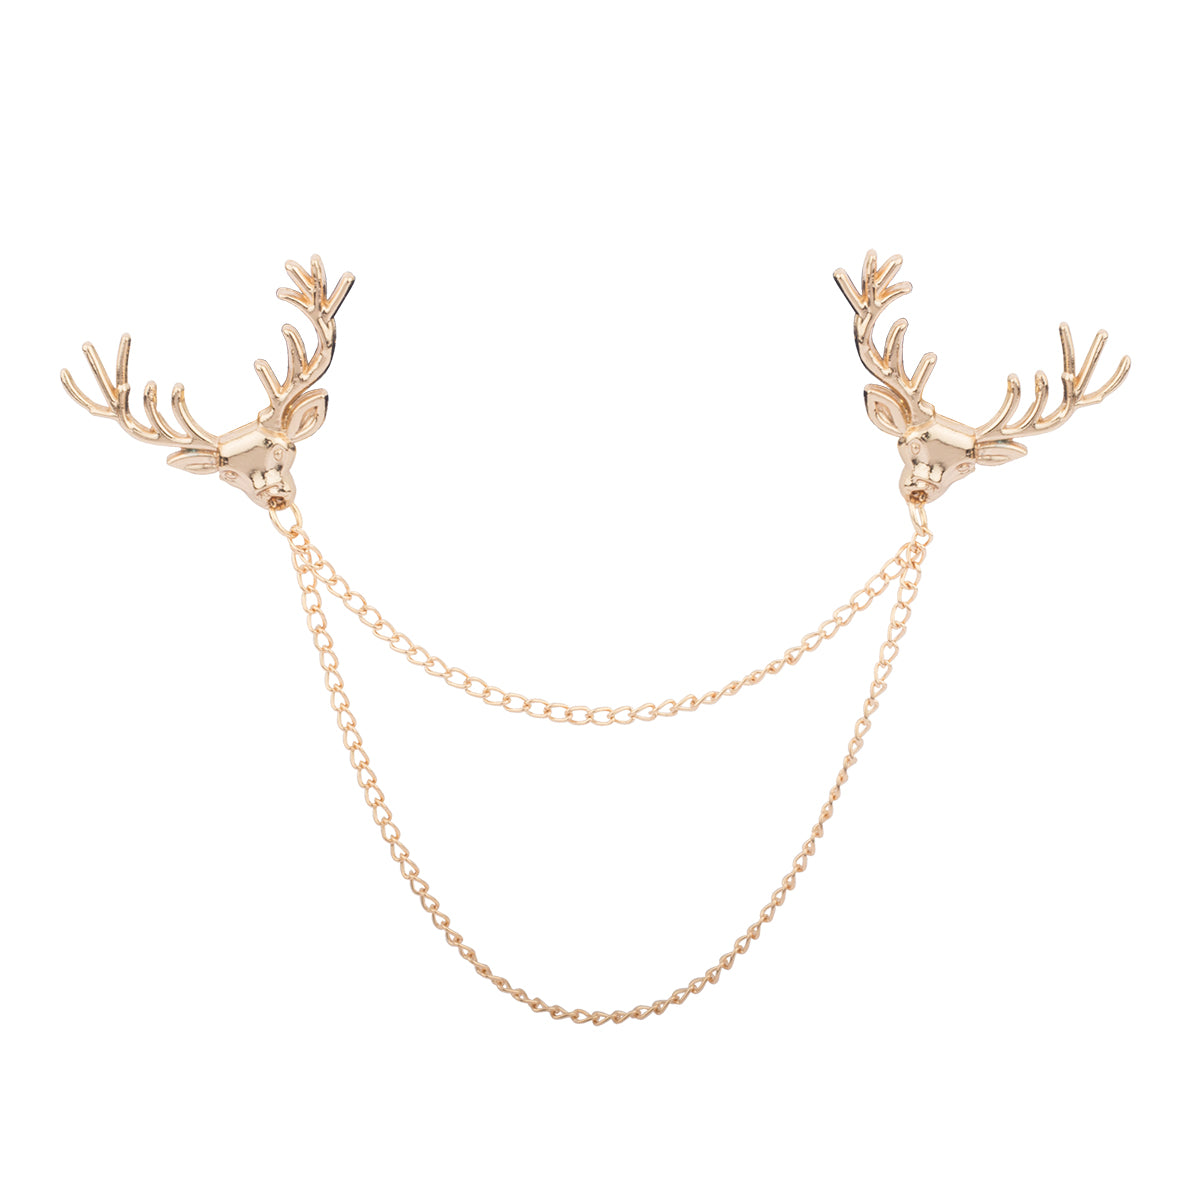 Lending a tinge of luxury to your formal wear, this refined collar pin is set on a gold undertone with a double chained necklace and reindeer on top.